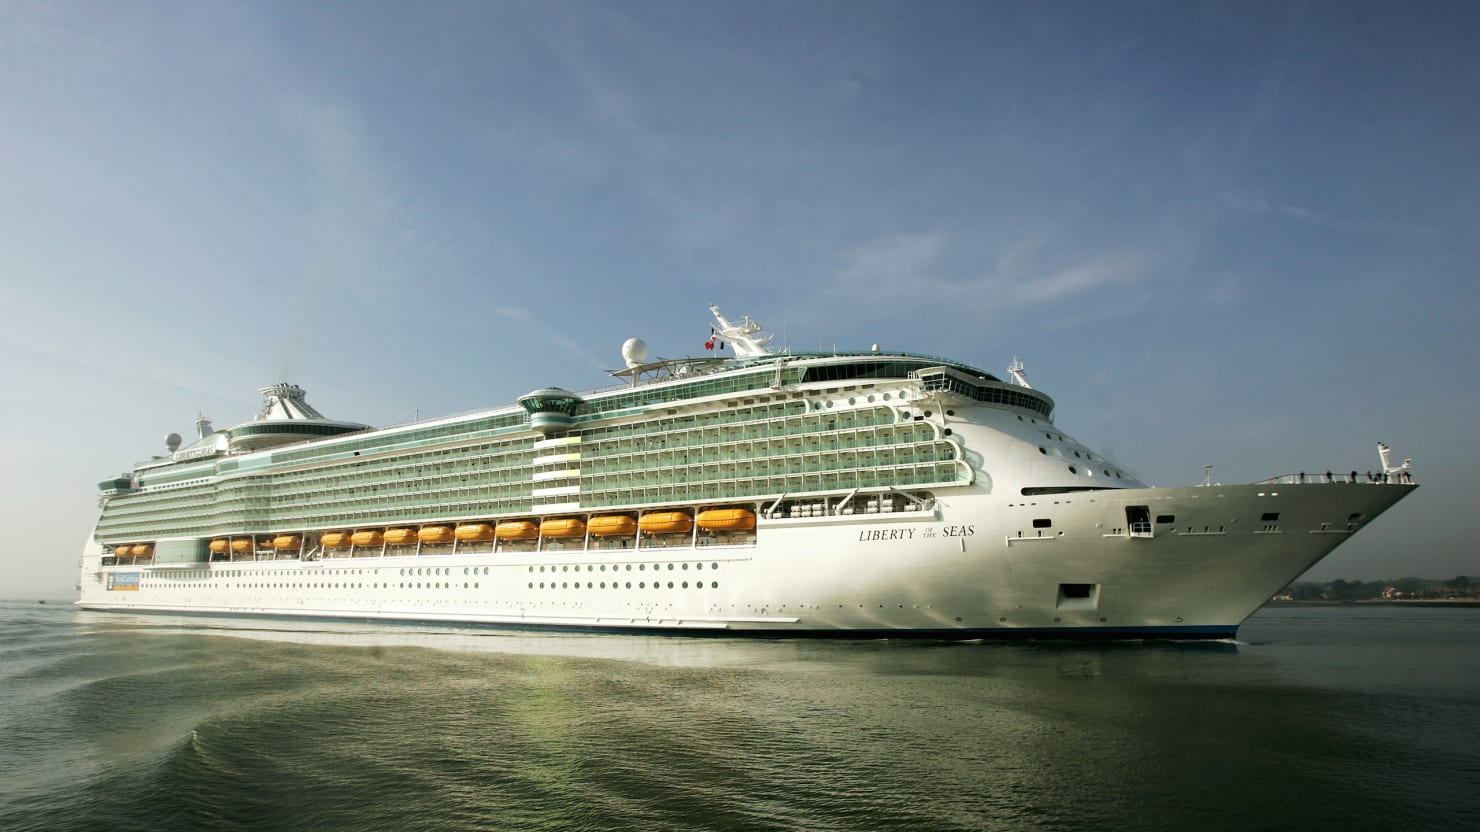 Cruise Ships Dump B Gallons Of Sewage The Daily Beast - Cruise ship sewage